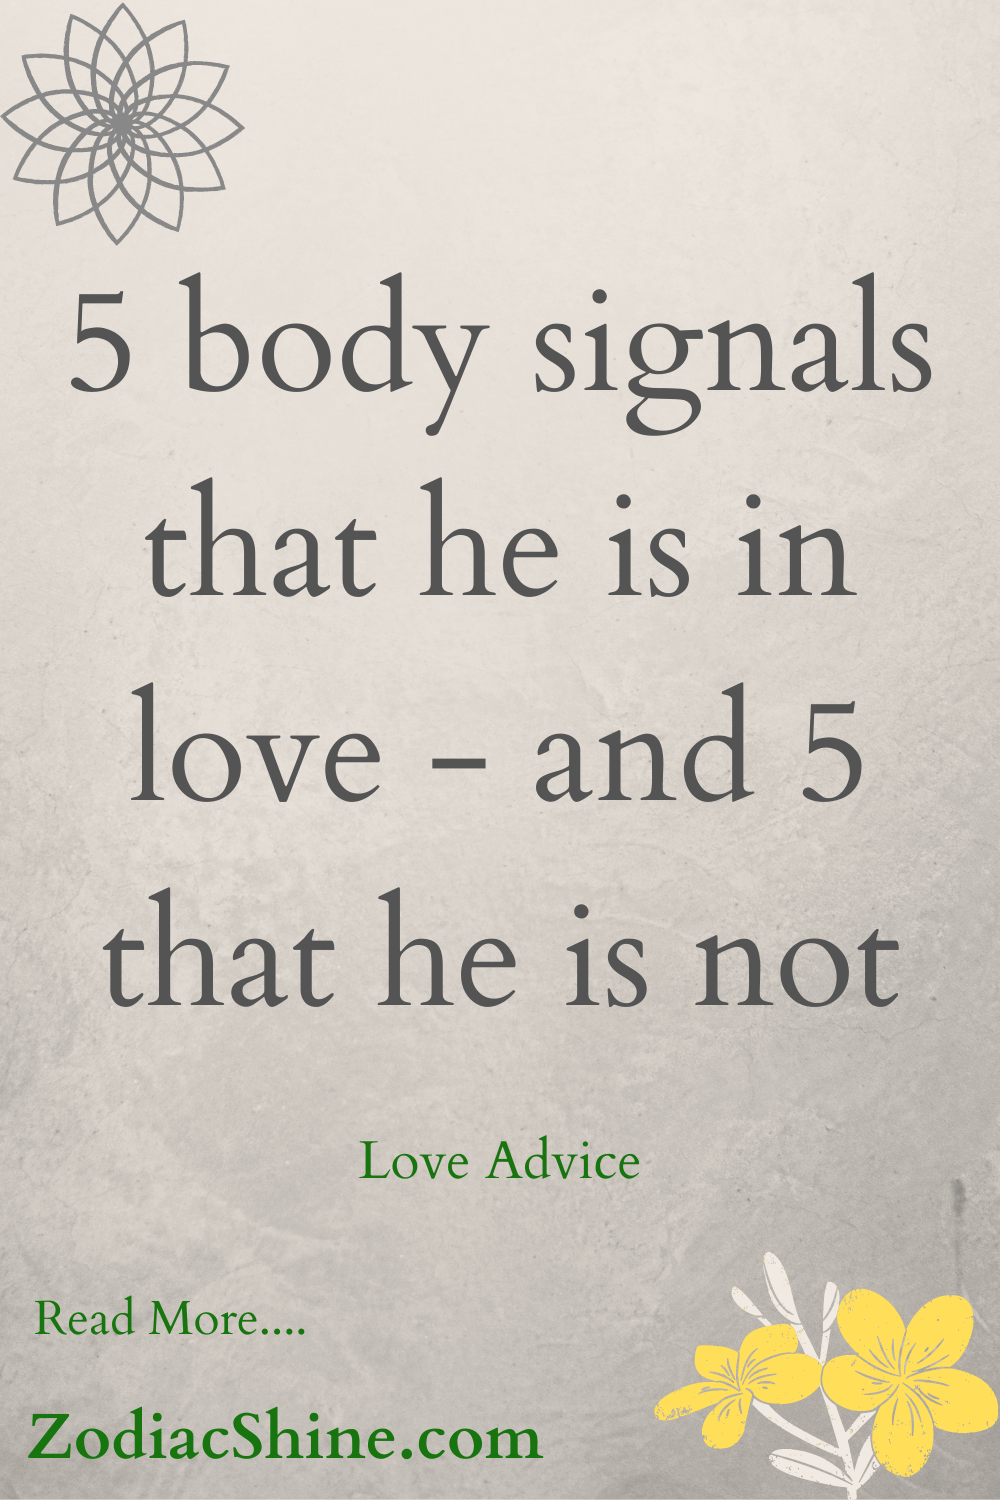 5 body signals that he is in love - and 5 that he is not